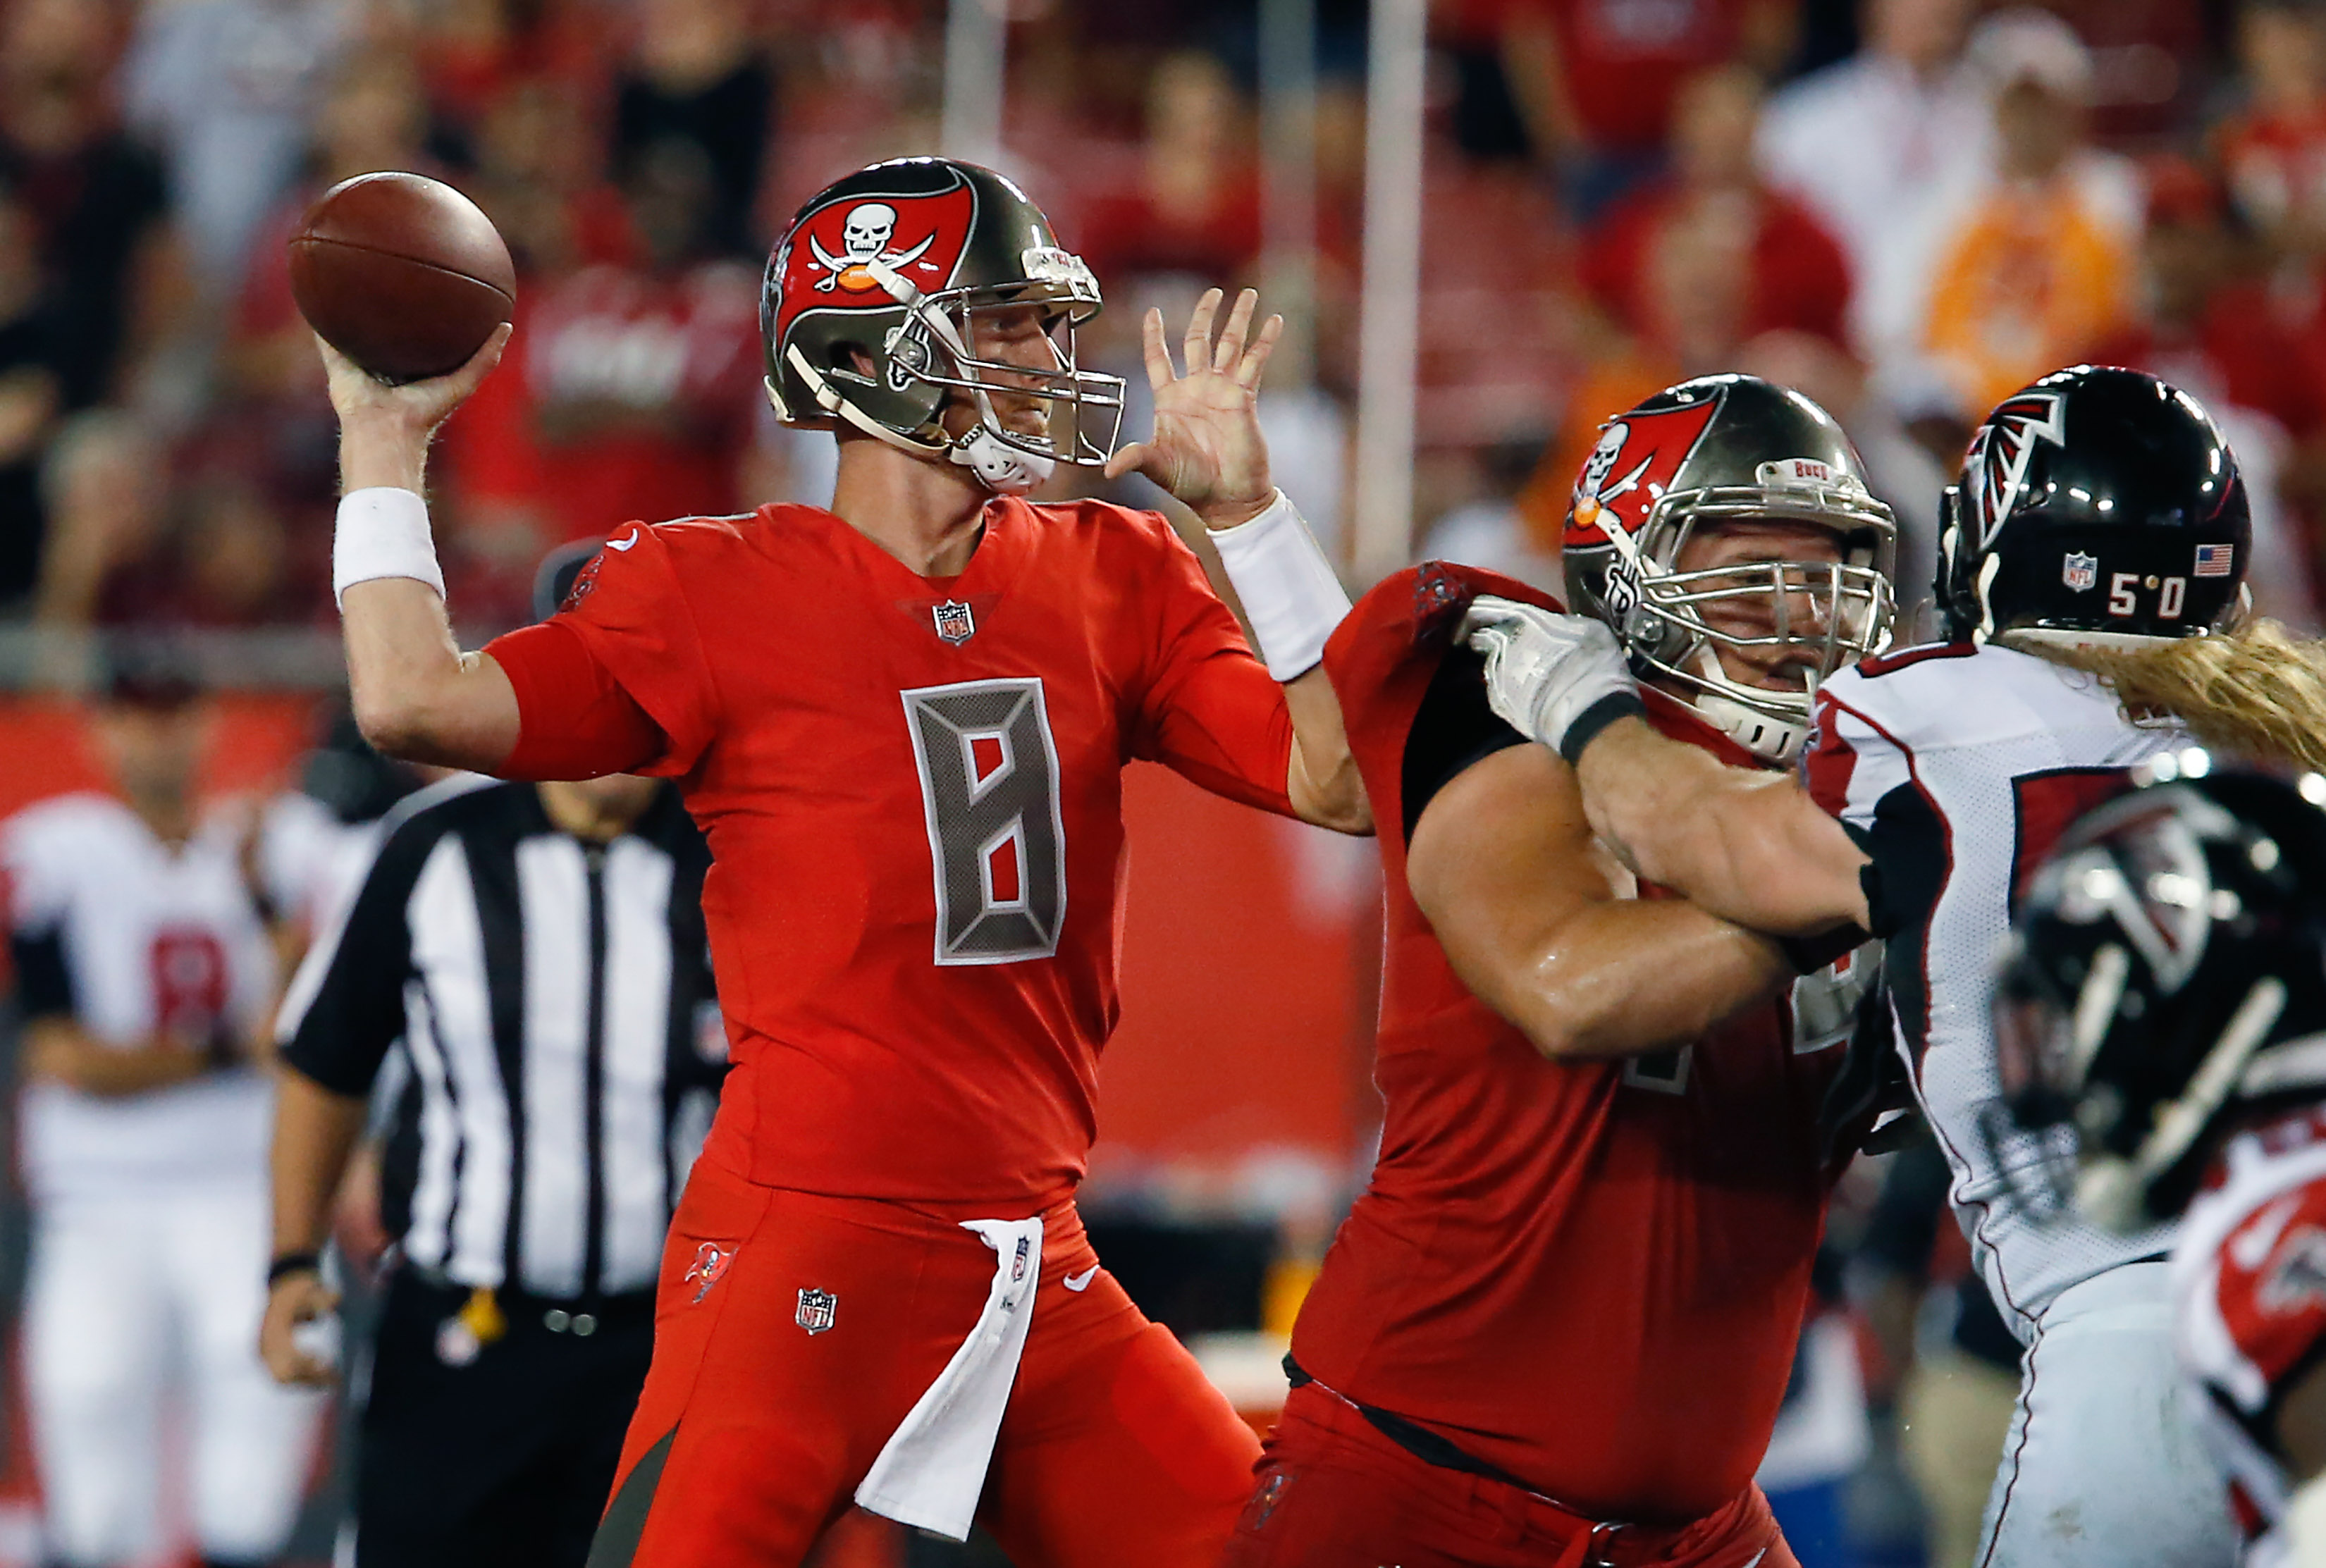 Nov 3, 2016; Tampa, FL, USA; Tampa Bay Buccaneers quarterback Mike Glennon (8) throws a pass during the second half of a football game against the Atlanta Falcons at Raymond James Stadium. The Falcons won 43-28. Mandatory Credit: Reinhold Matay-USA TODAY Sports